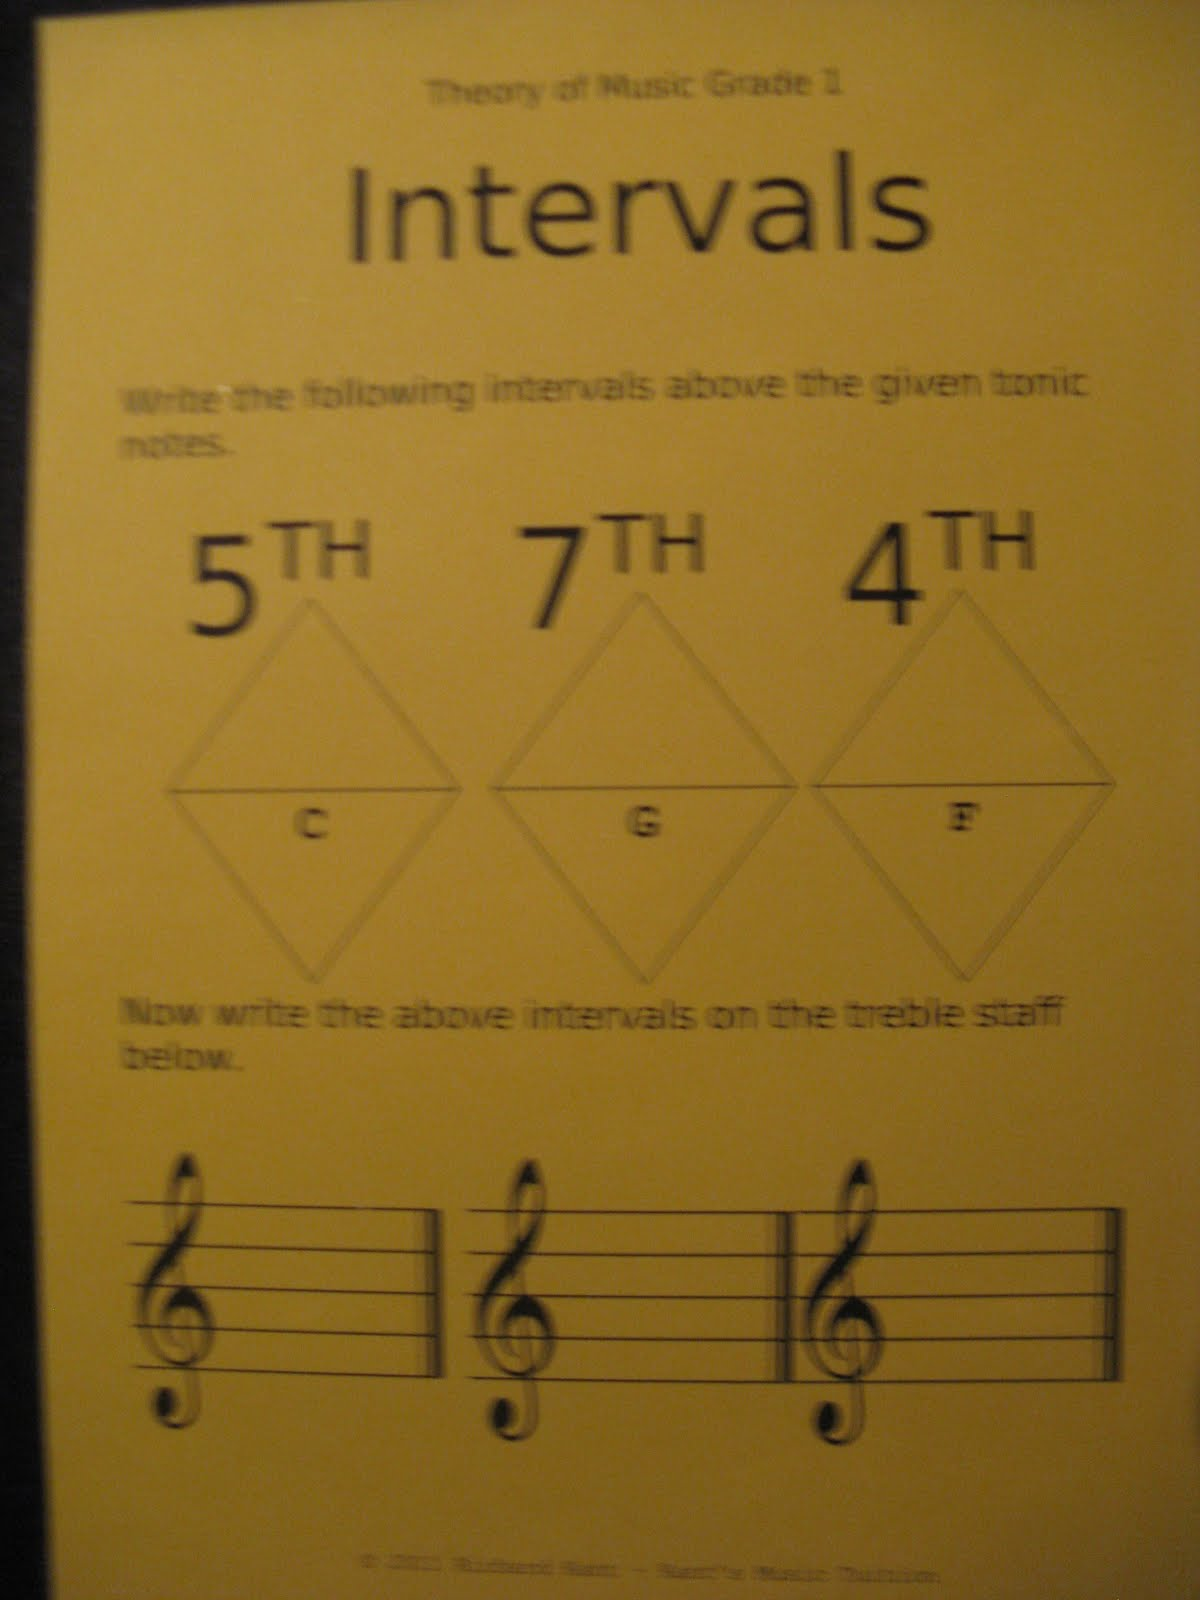 Piano Practice Tips Intervals Worksheet Ameb Theory Of